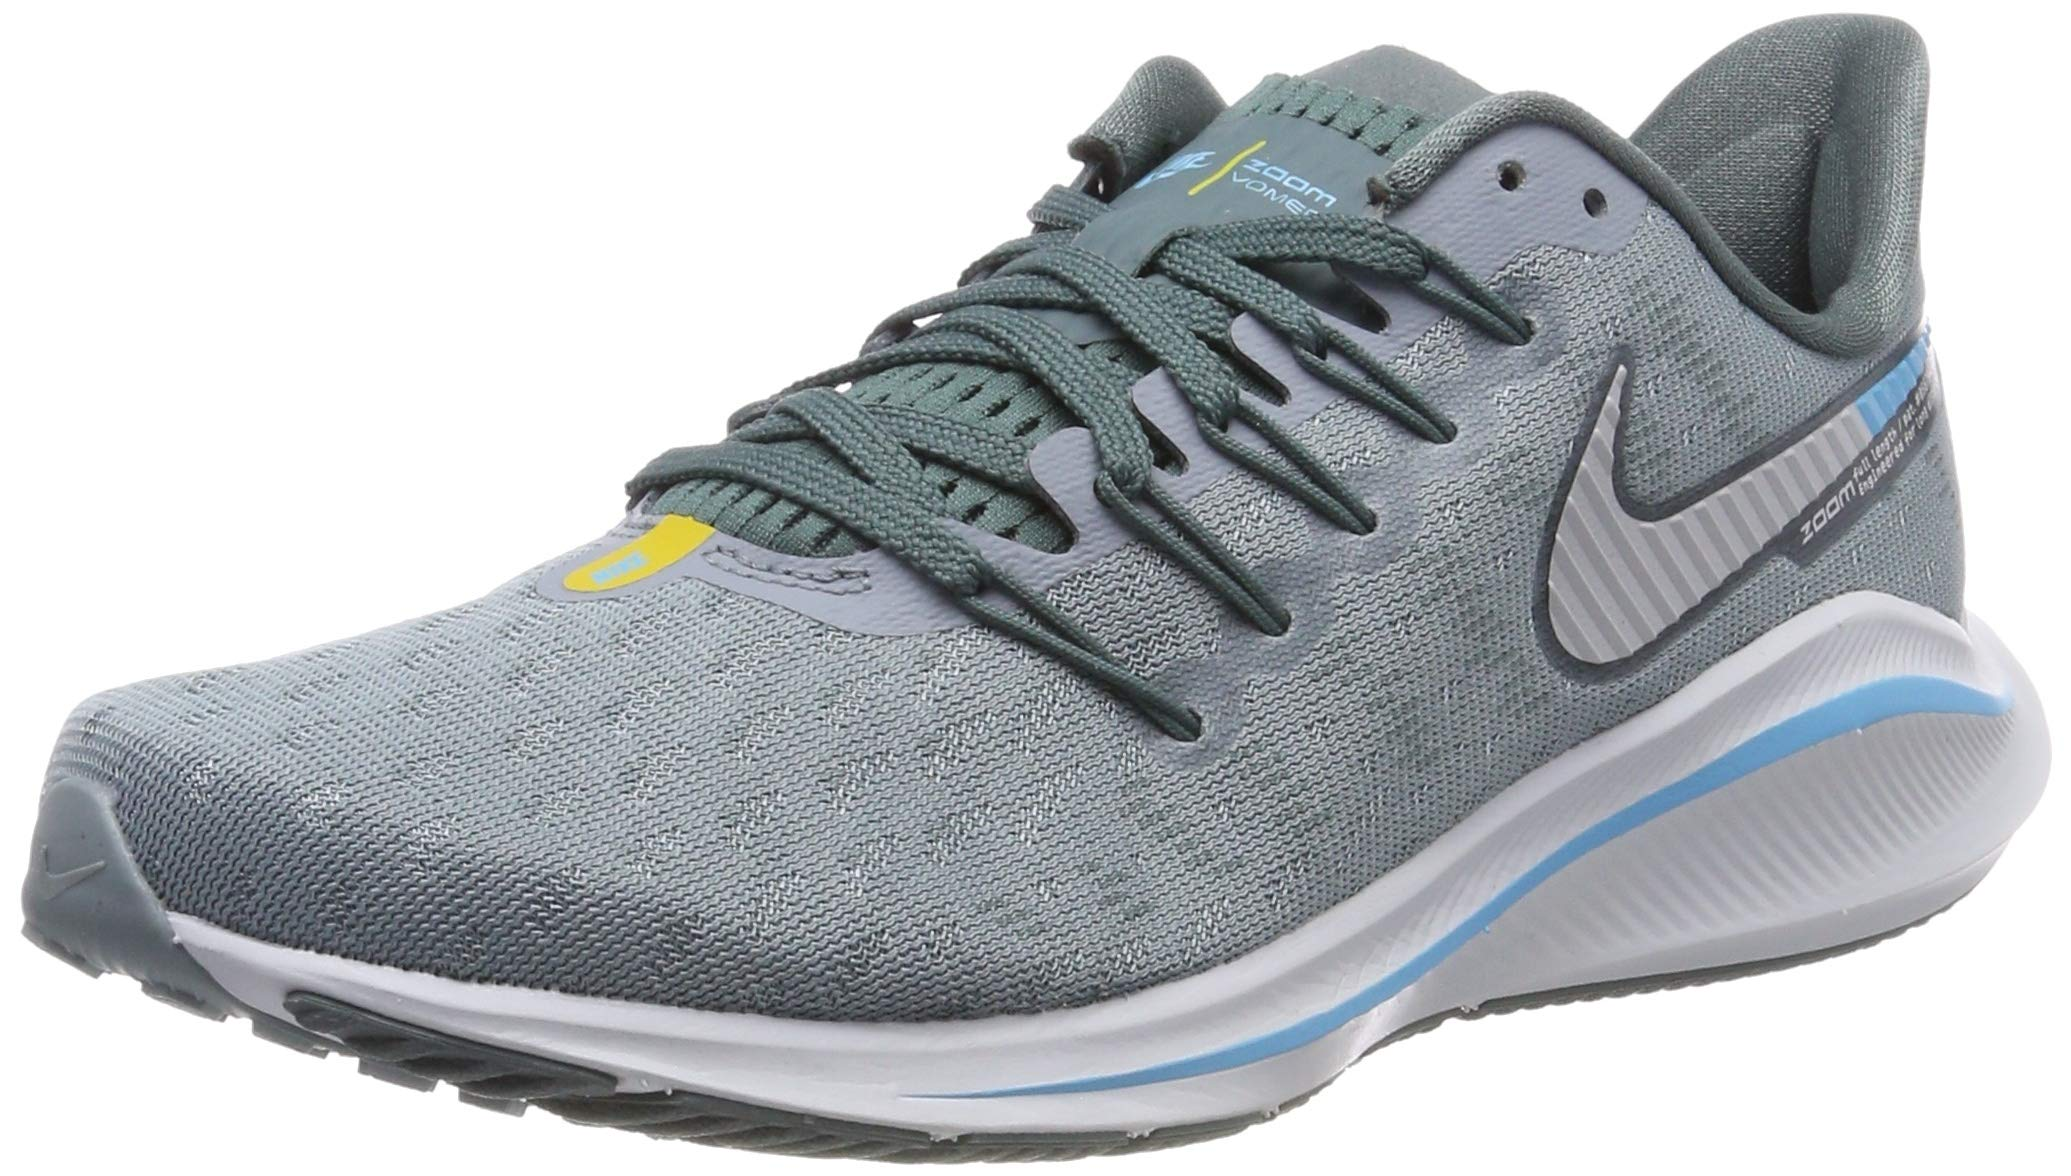 Nike Air Zoom Vomero 14 Sz 7 Mens Running Aviator Grey/Pure Platinum-Blue Fury Shoes by Nike (Image #1)